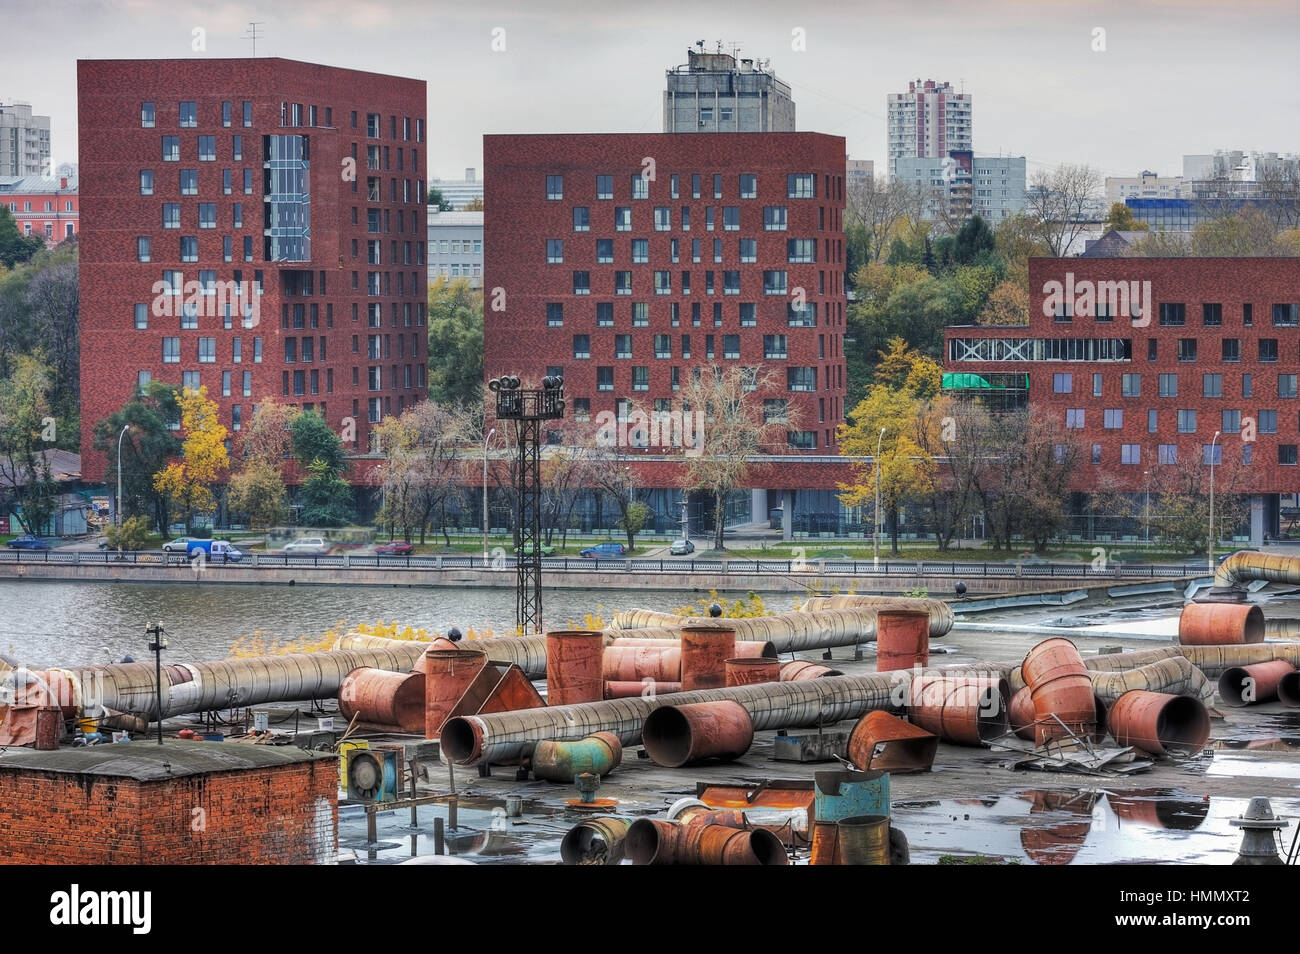 Zil Moscow Stock Photos & Zil Moscow Stock Images - Alamy on